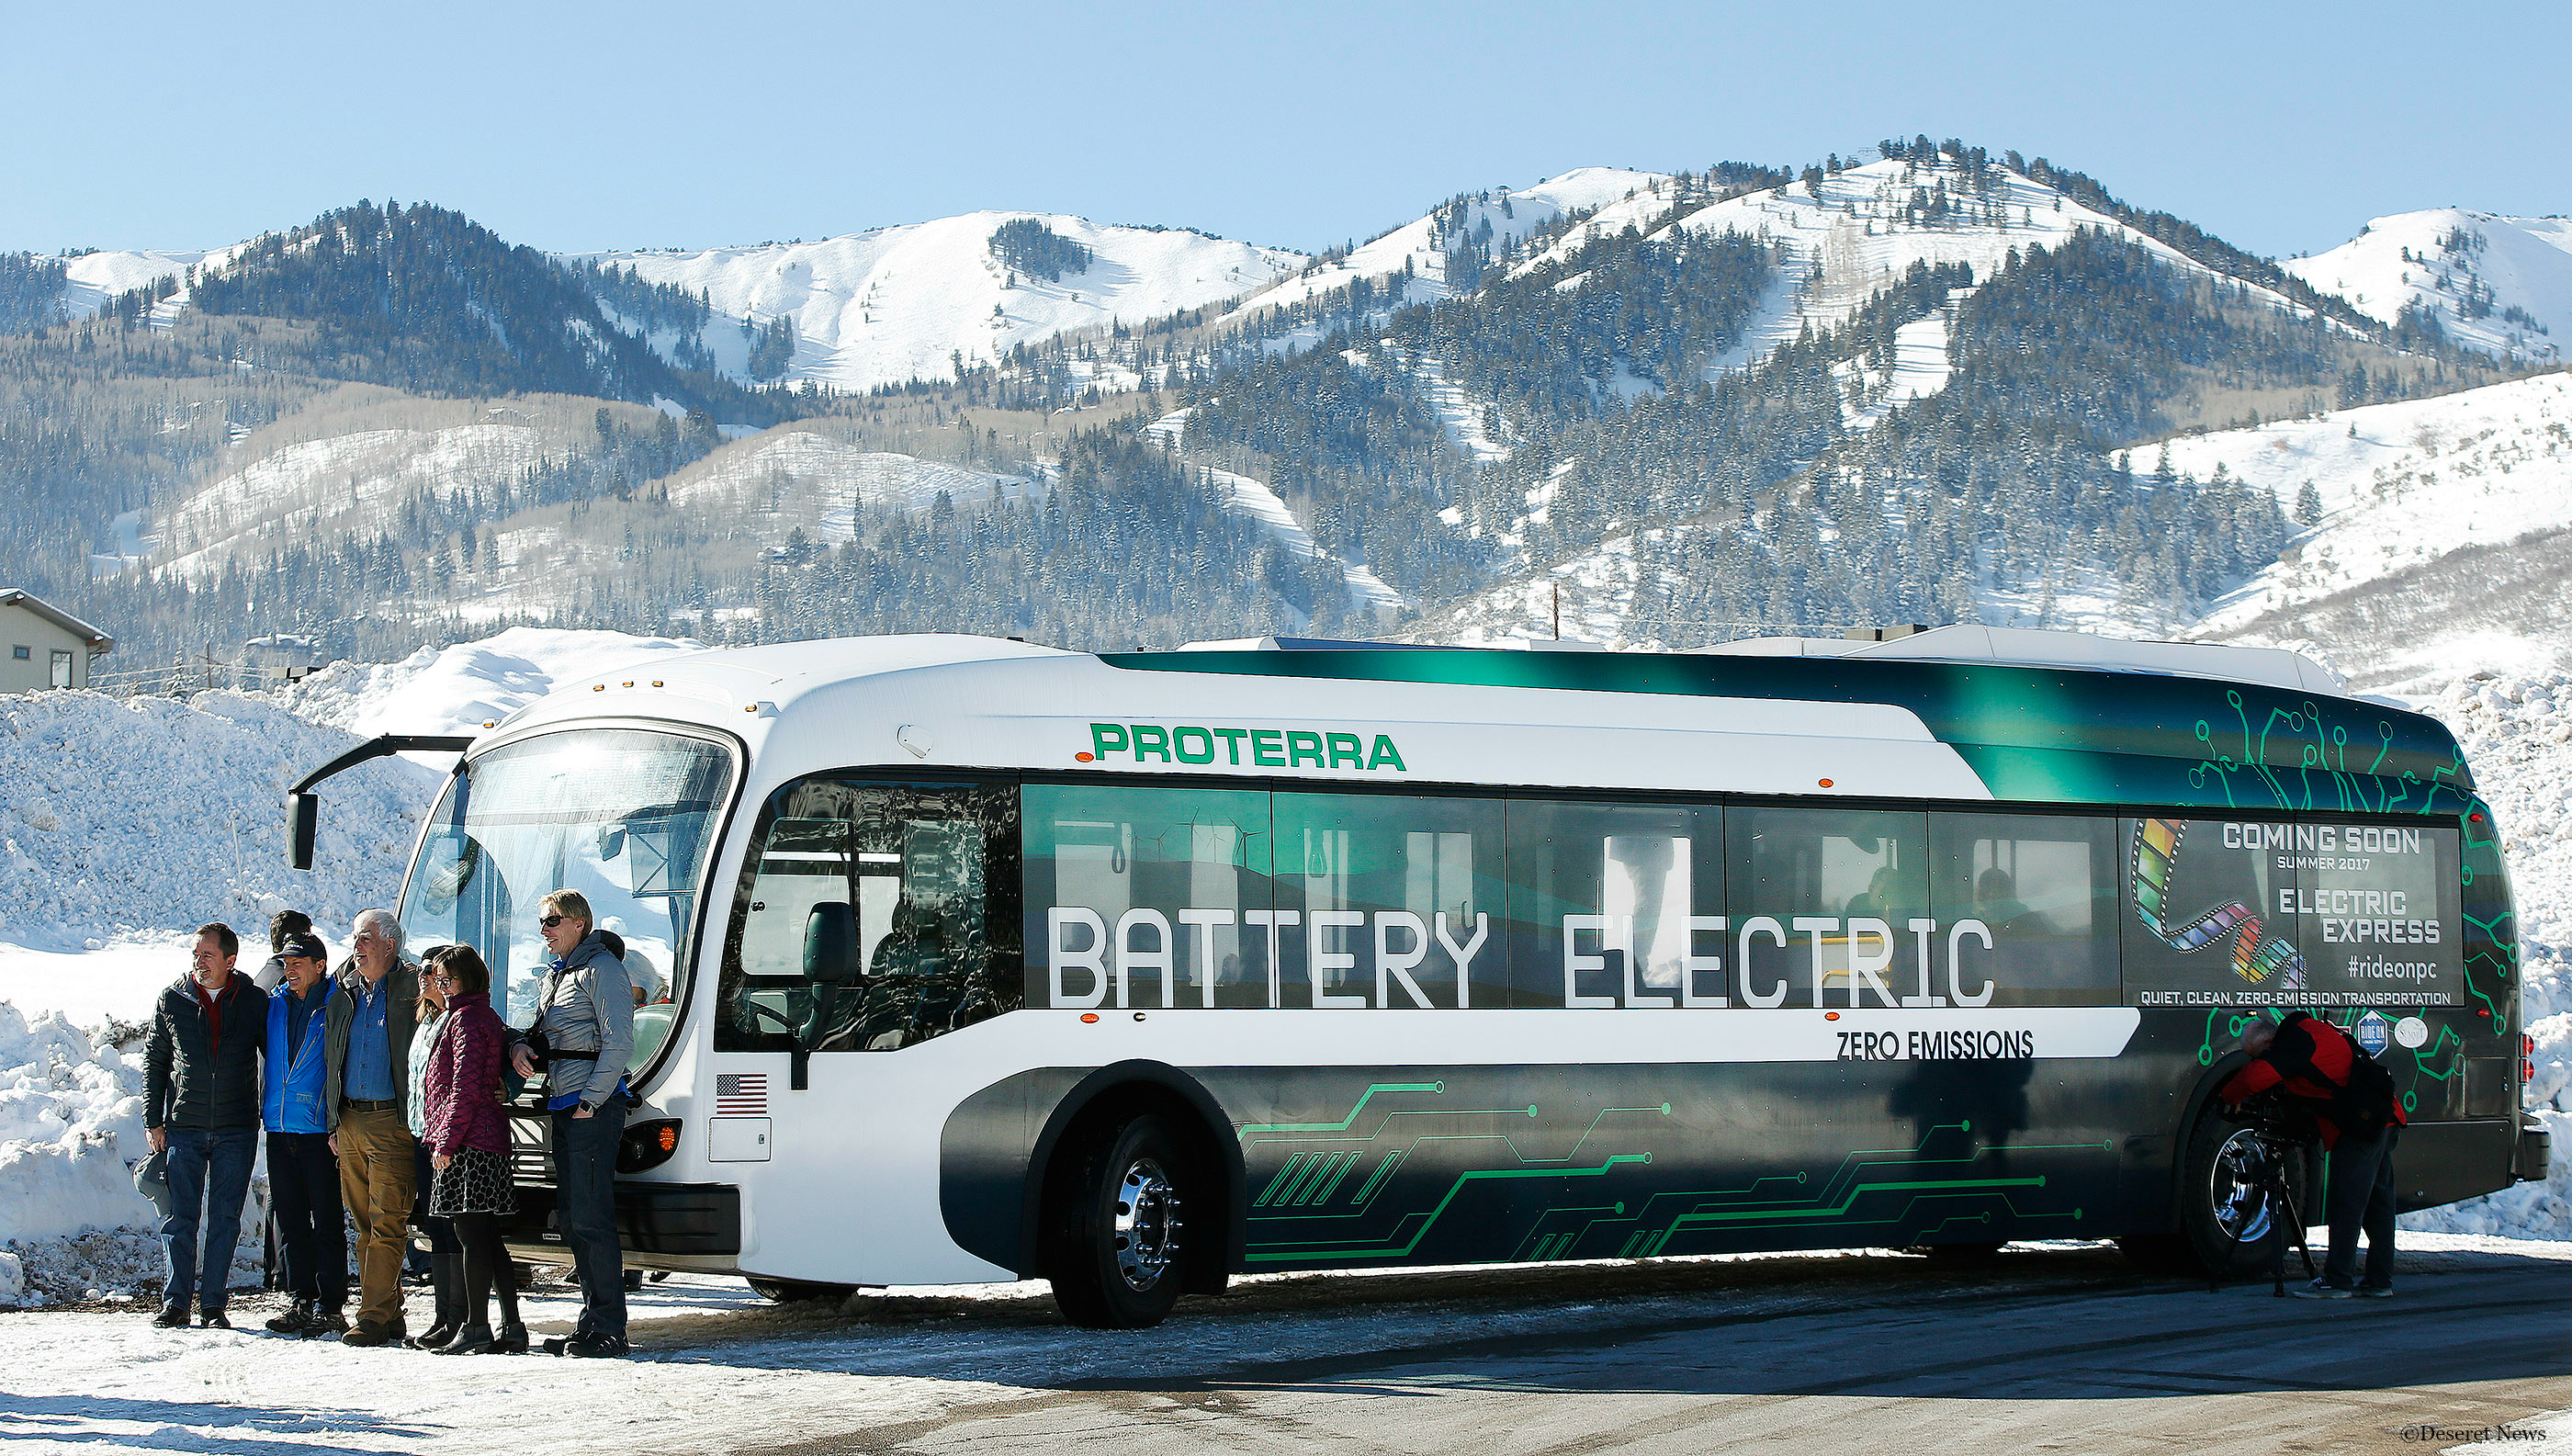 earthjustice.org - Buses Are the Electric Vehicle Everyone Should Be Talking About. Here's Why.